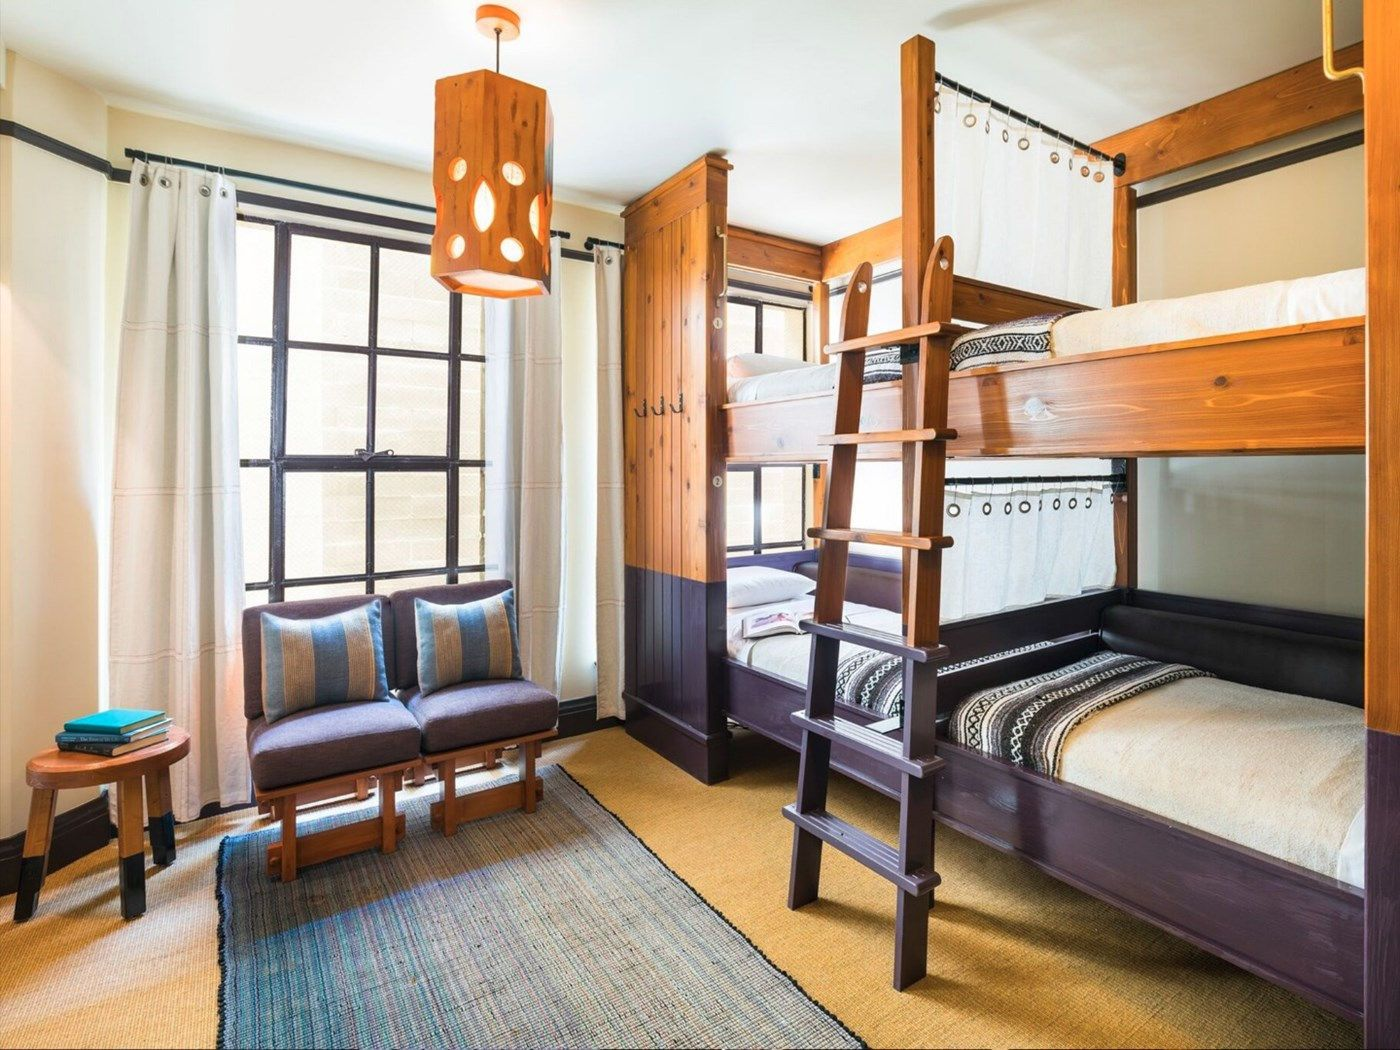 Freehand Los Angeles Hotel   Reservations | Popular | Bunk rooms